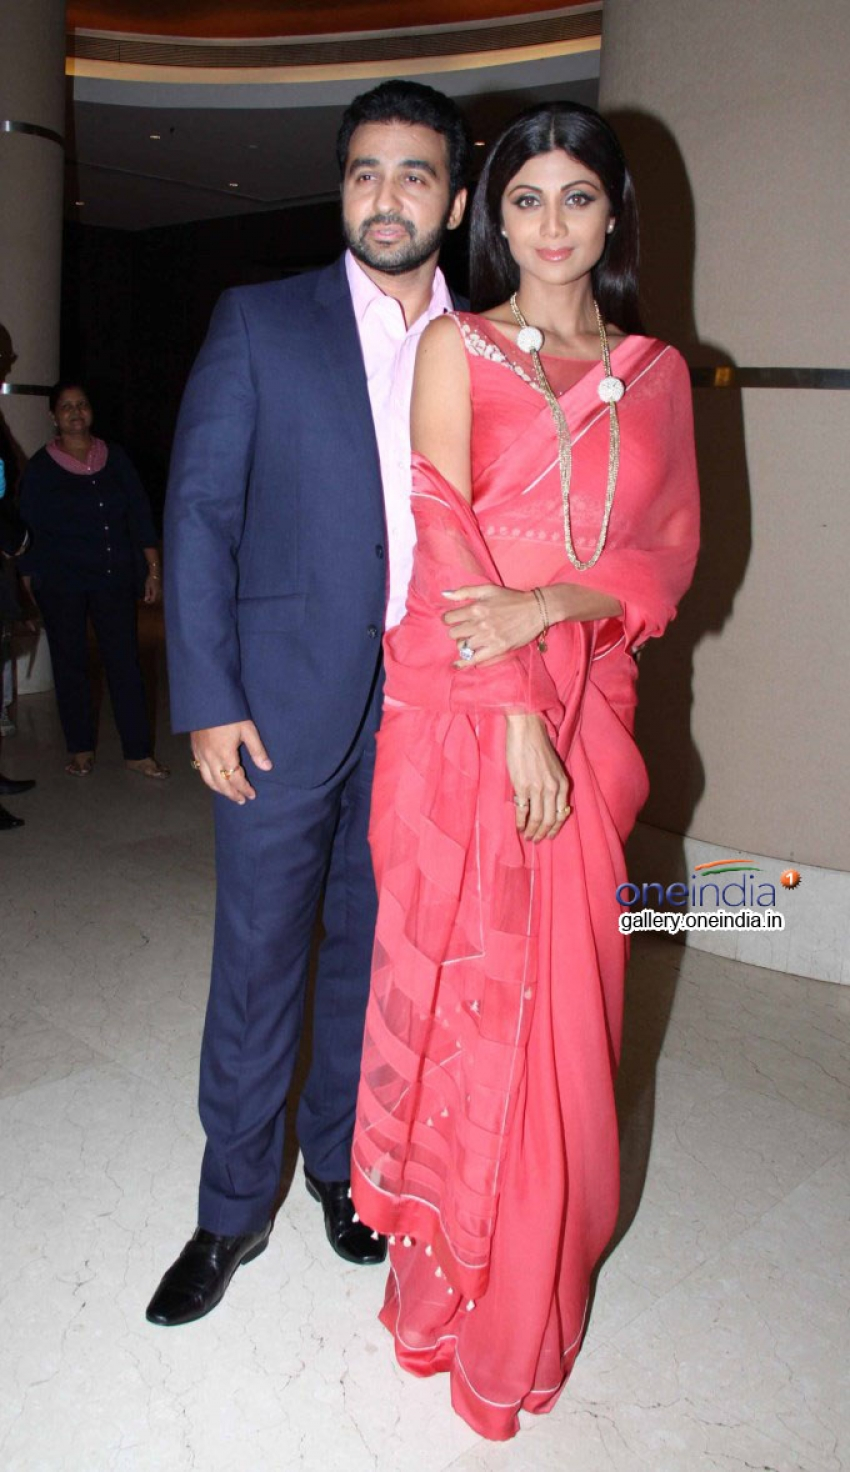 Shilpa Shetty Kundra and Raj Kundra at Goa Wedding Festival Press Meet Photos